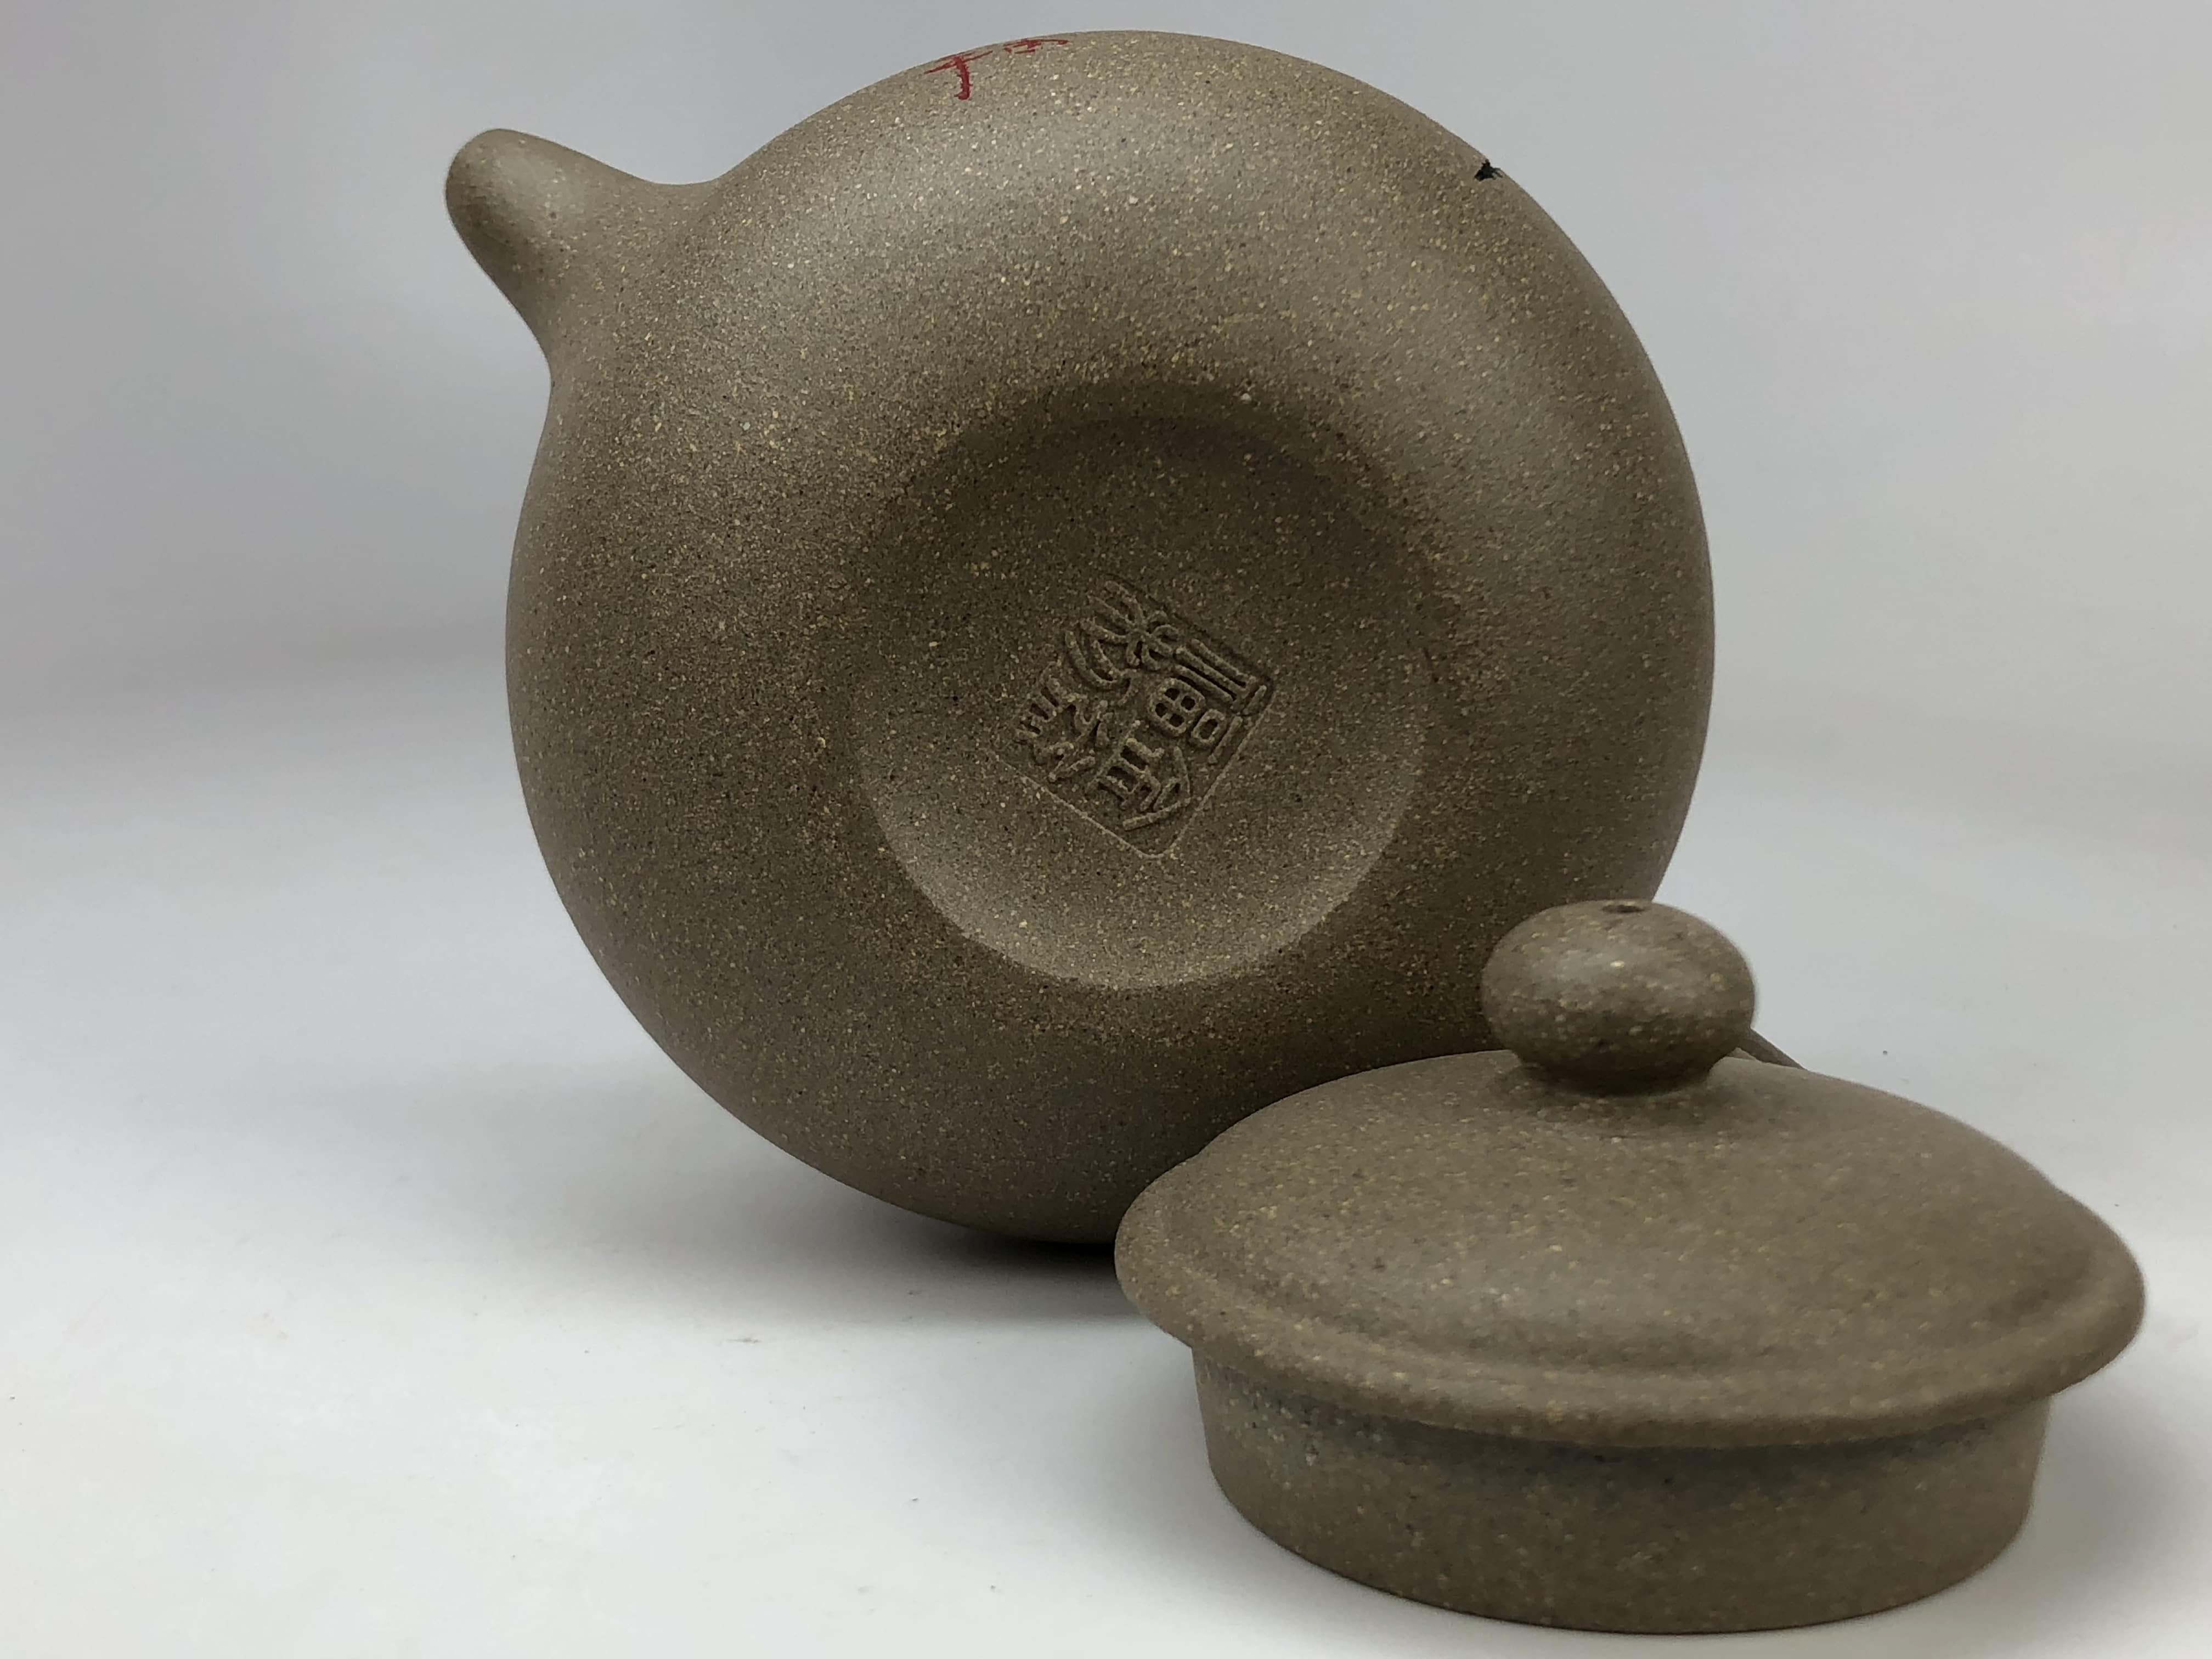 Grey Yixing Clay Teapot with Caligraphy